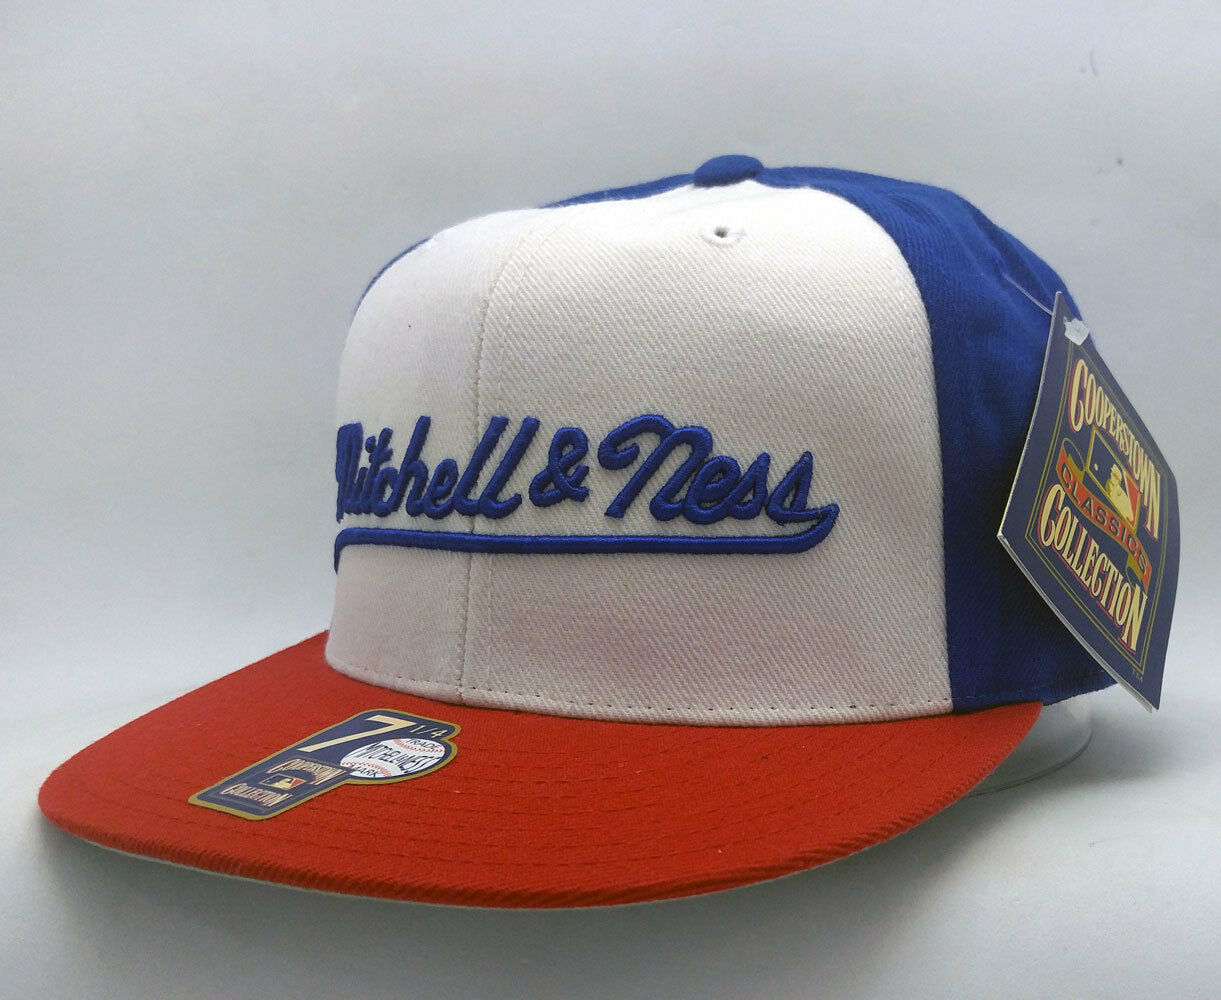 Mitchell & Ness Royal & White Size w/Red Brim Fitted Cap Size White 7 1/4 a234dc